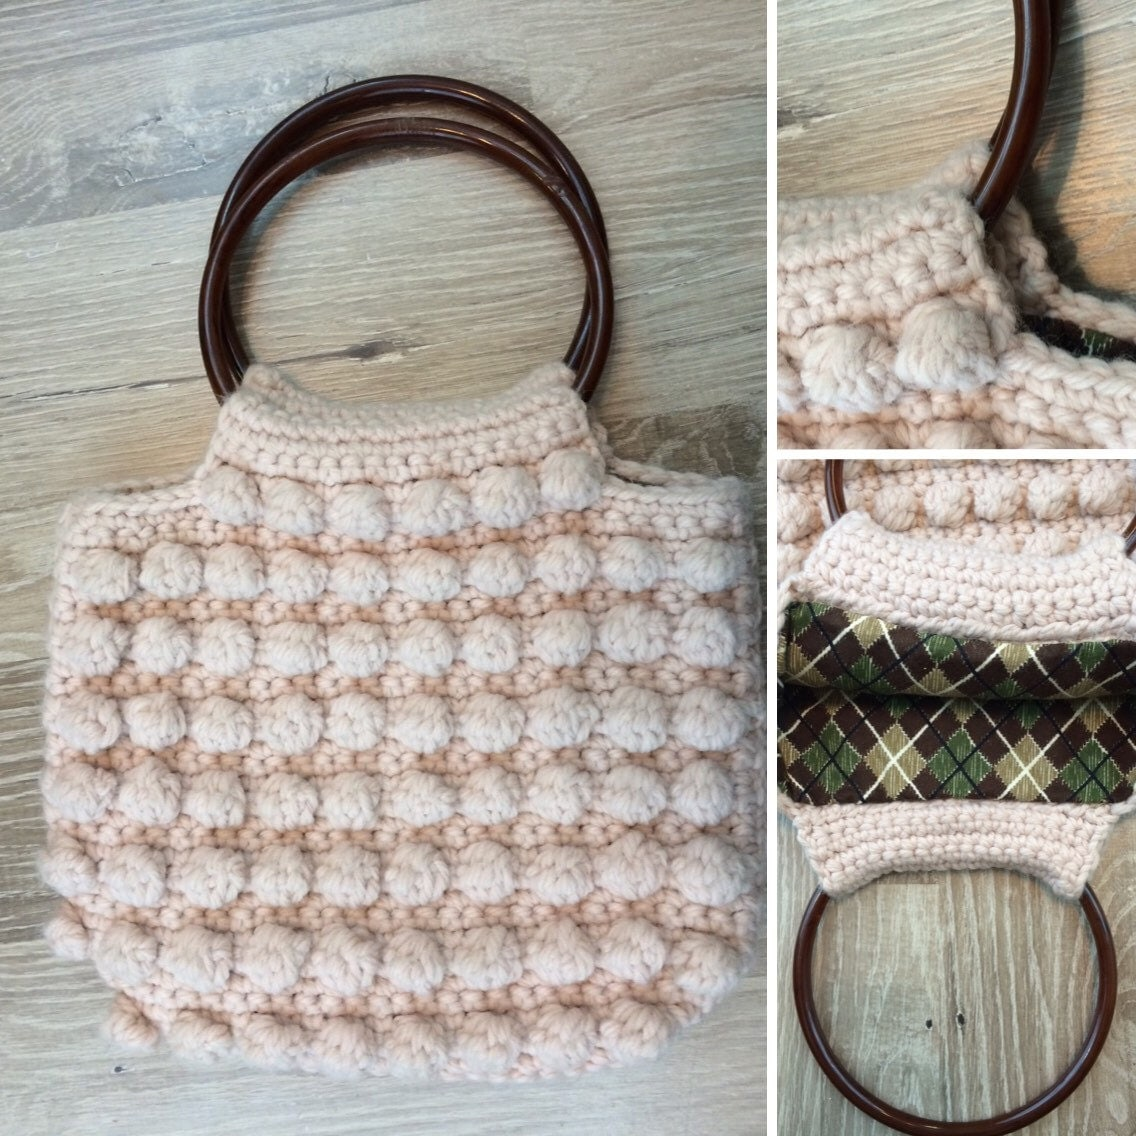 Crochet Handle For Purse : Crocheted bag/purse with plastic hoop handles by SouthBoundVtg